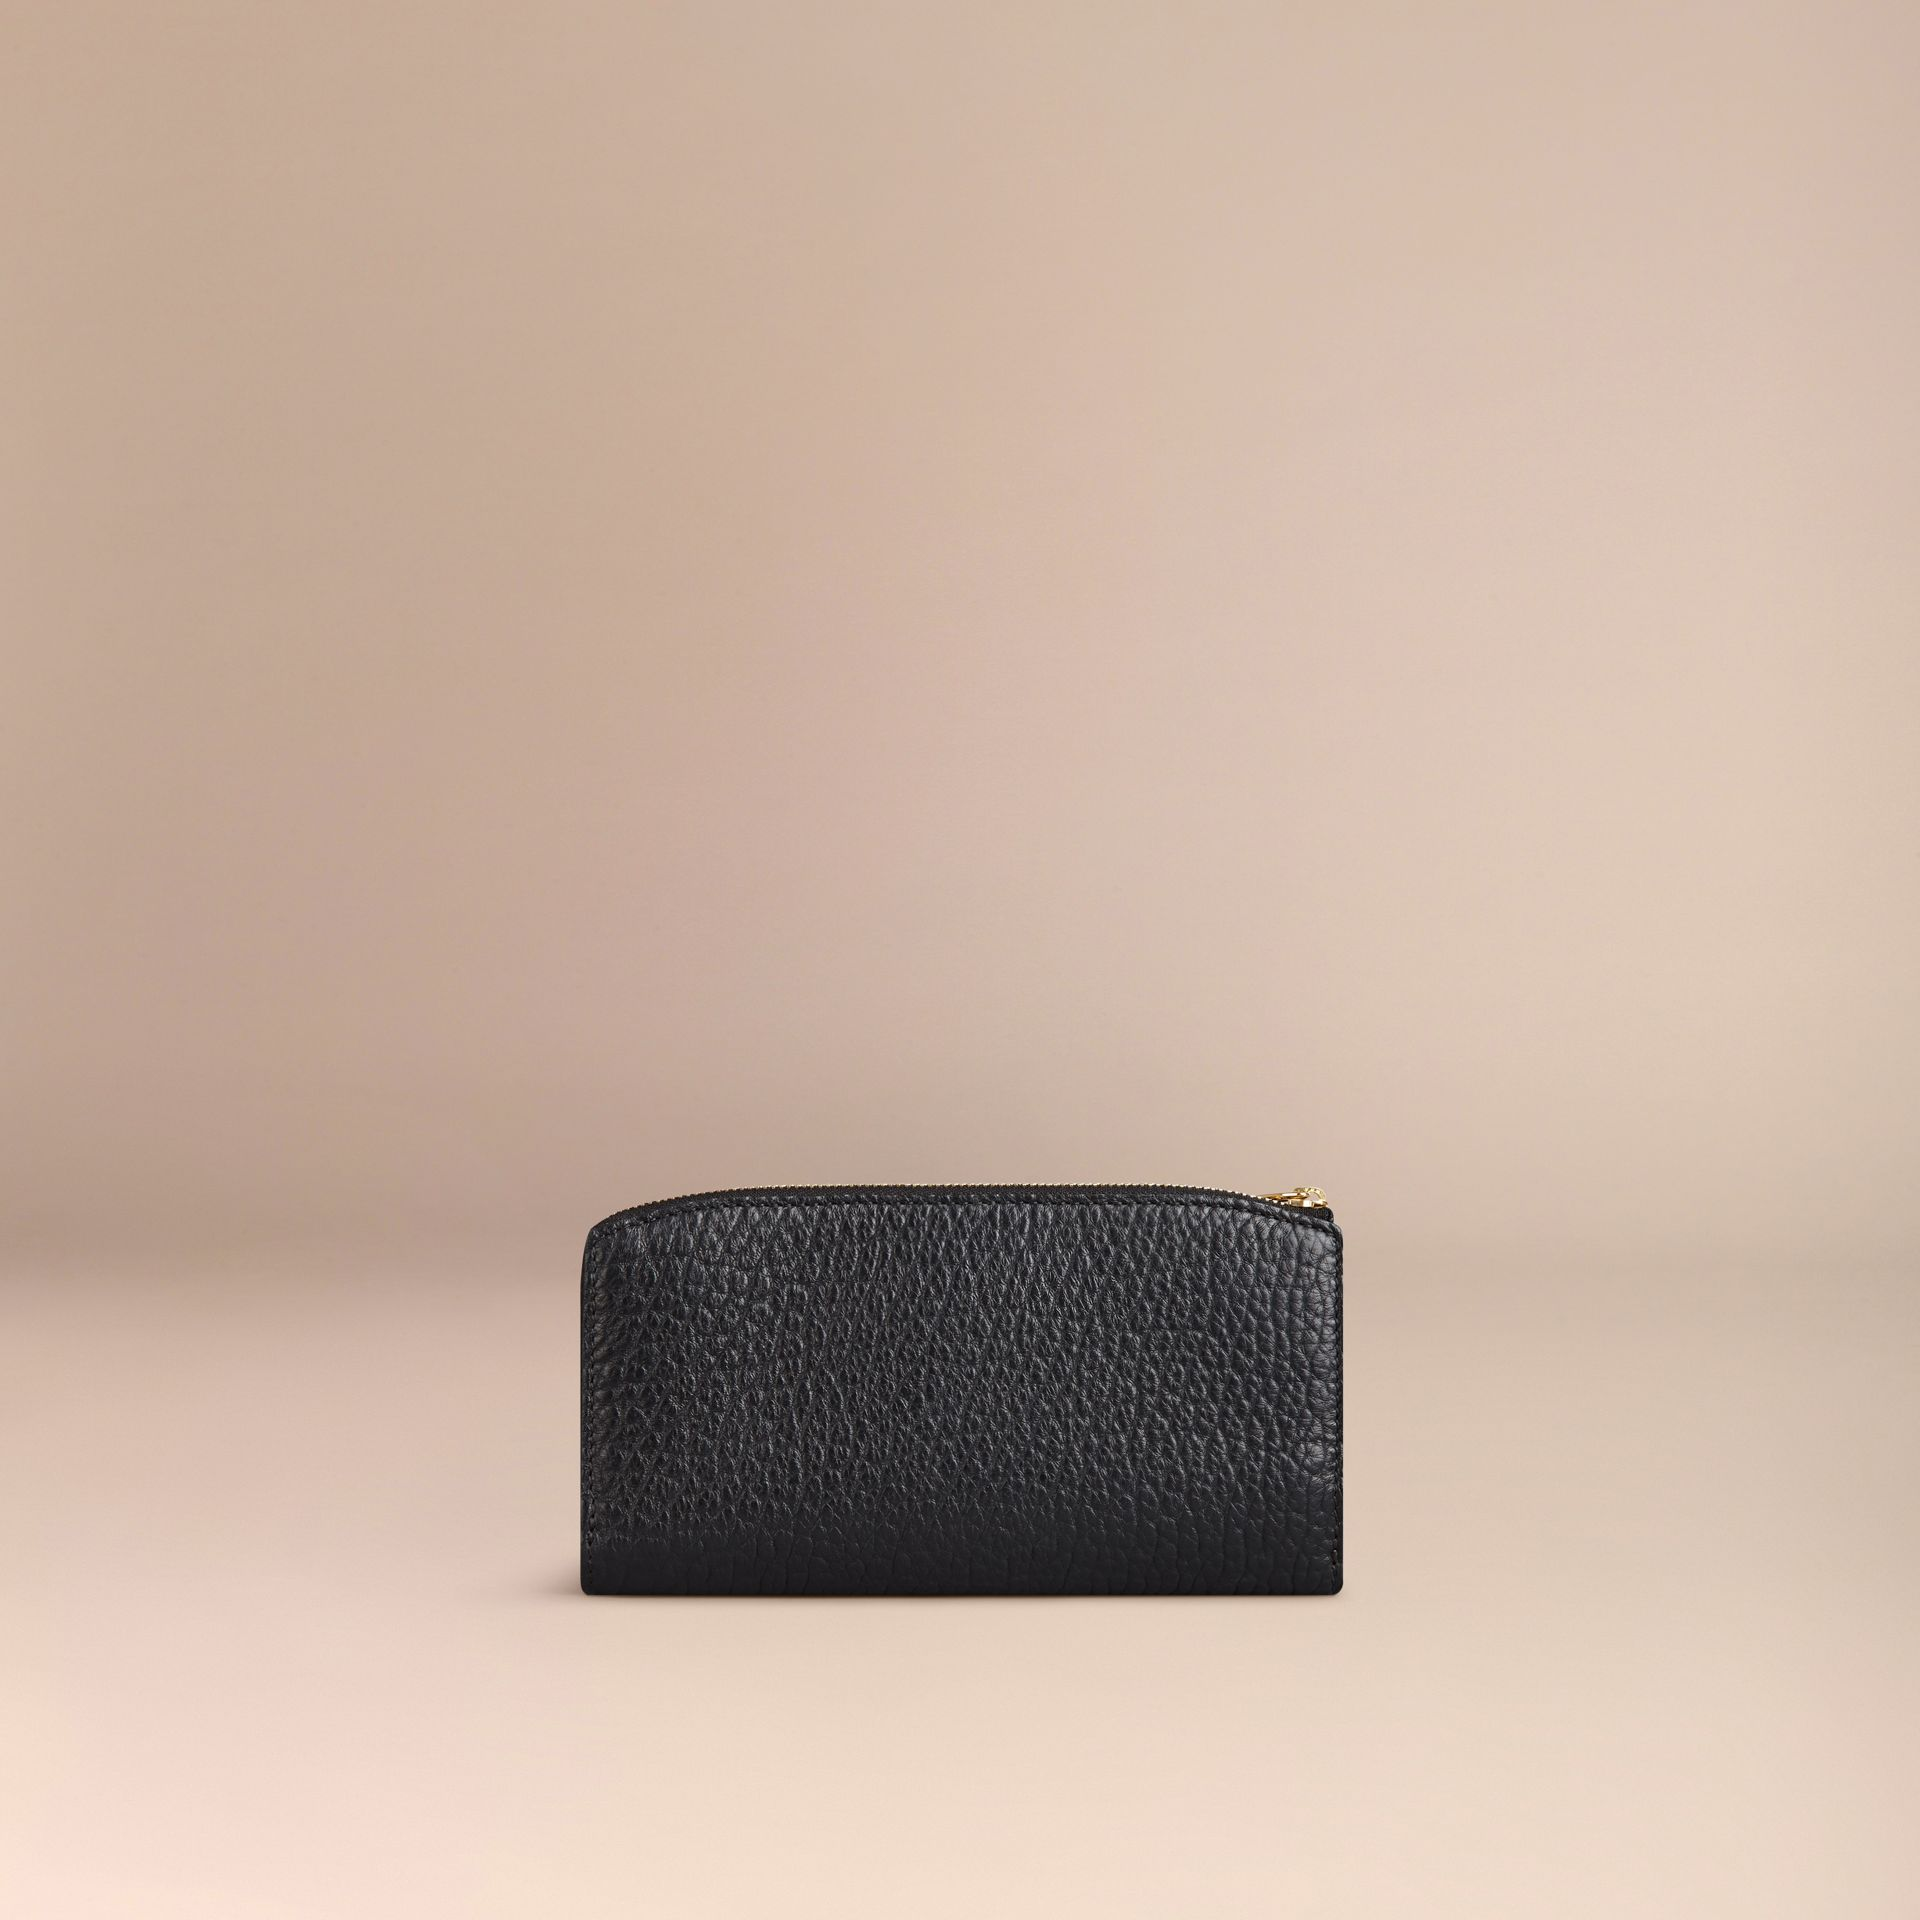 Black Signature Grain Leather Ziparound Wallet Black - gallery image 3